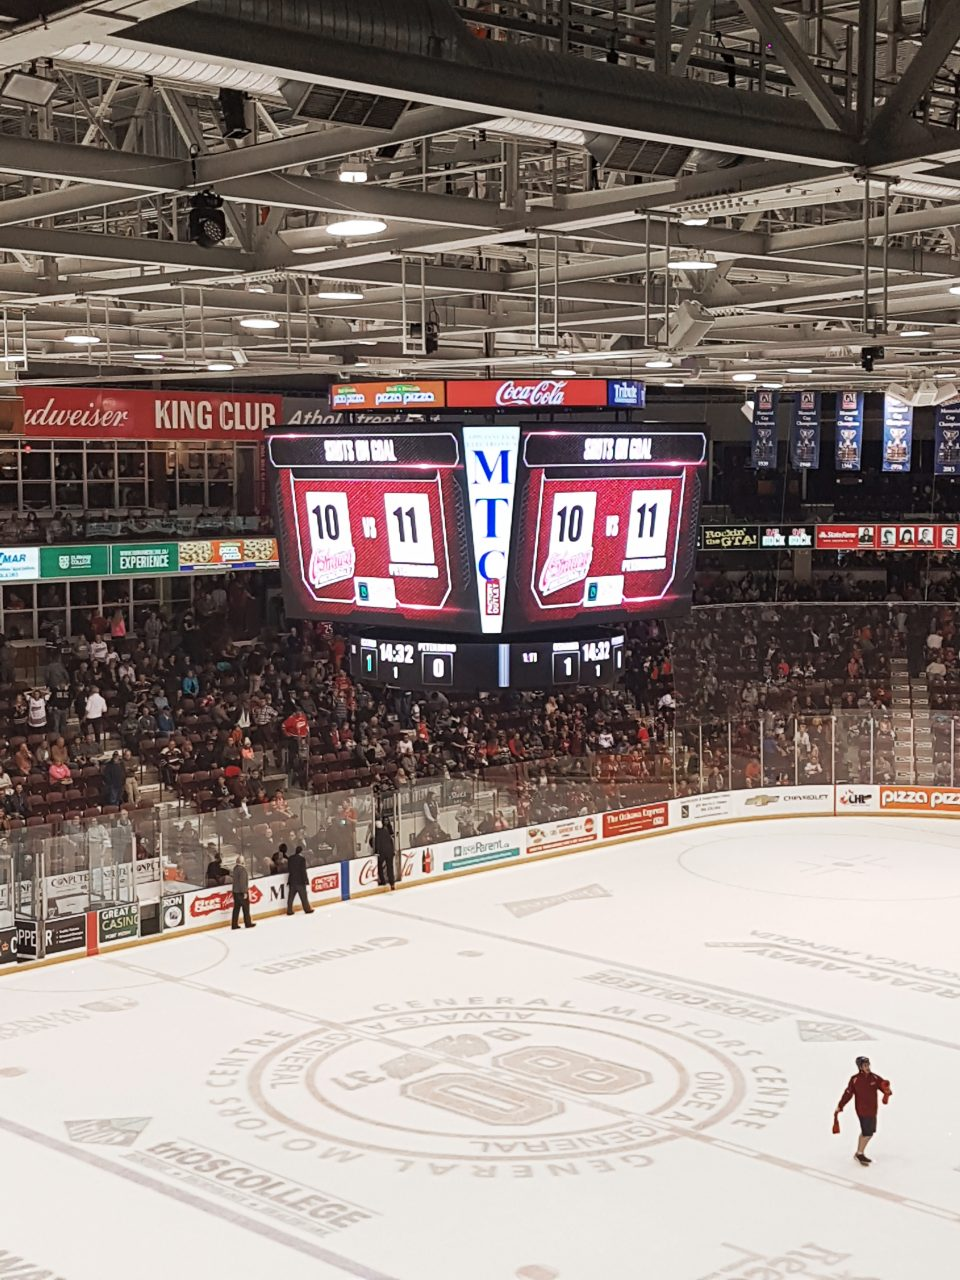 Scoreboard in the Oshawa Generals hockey arena